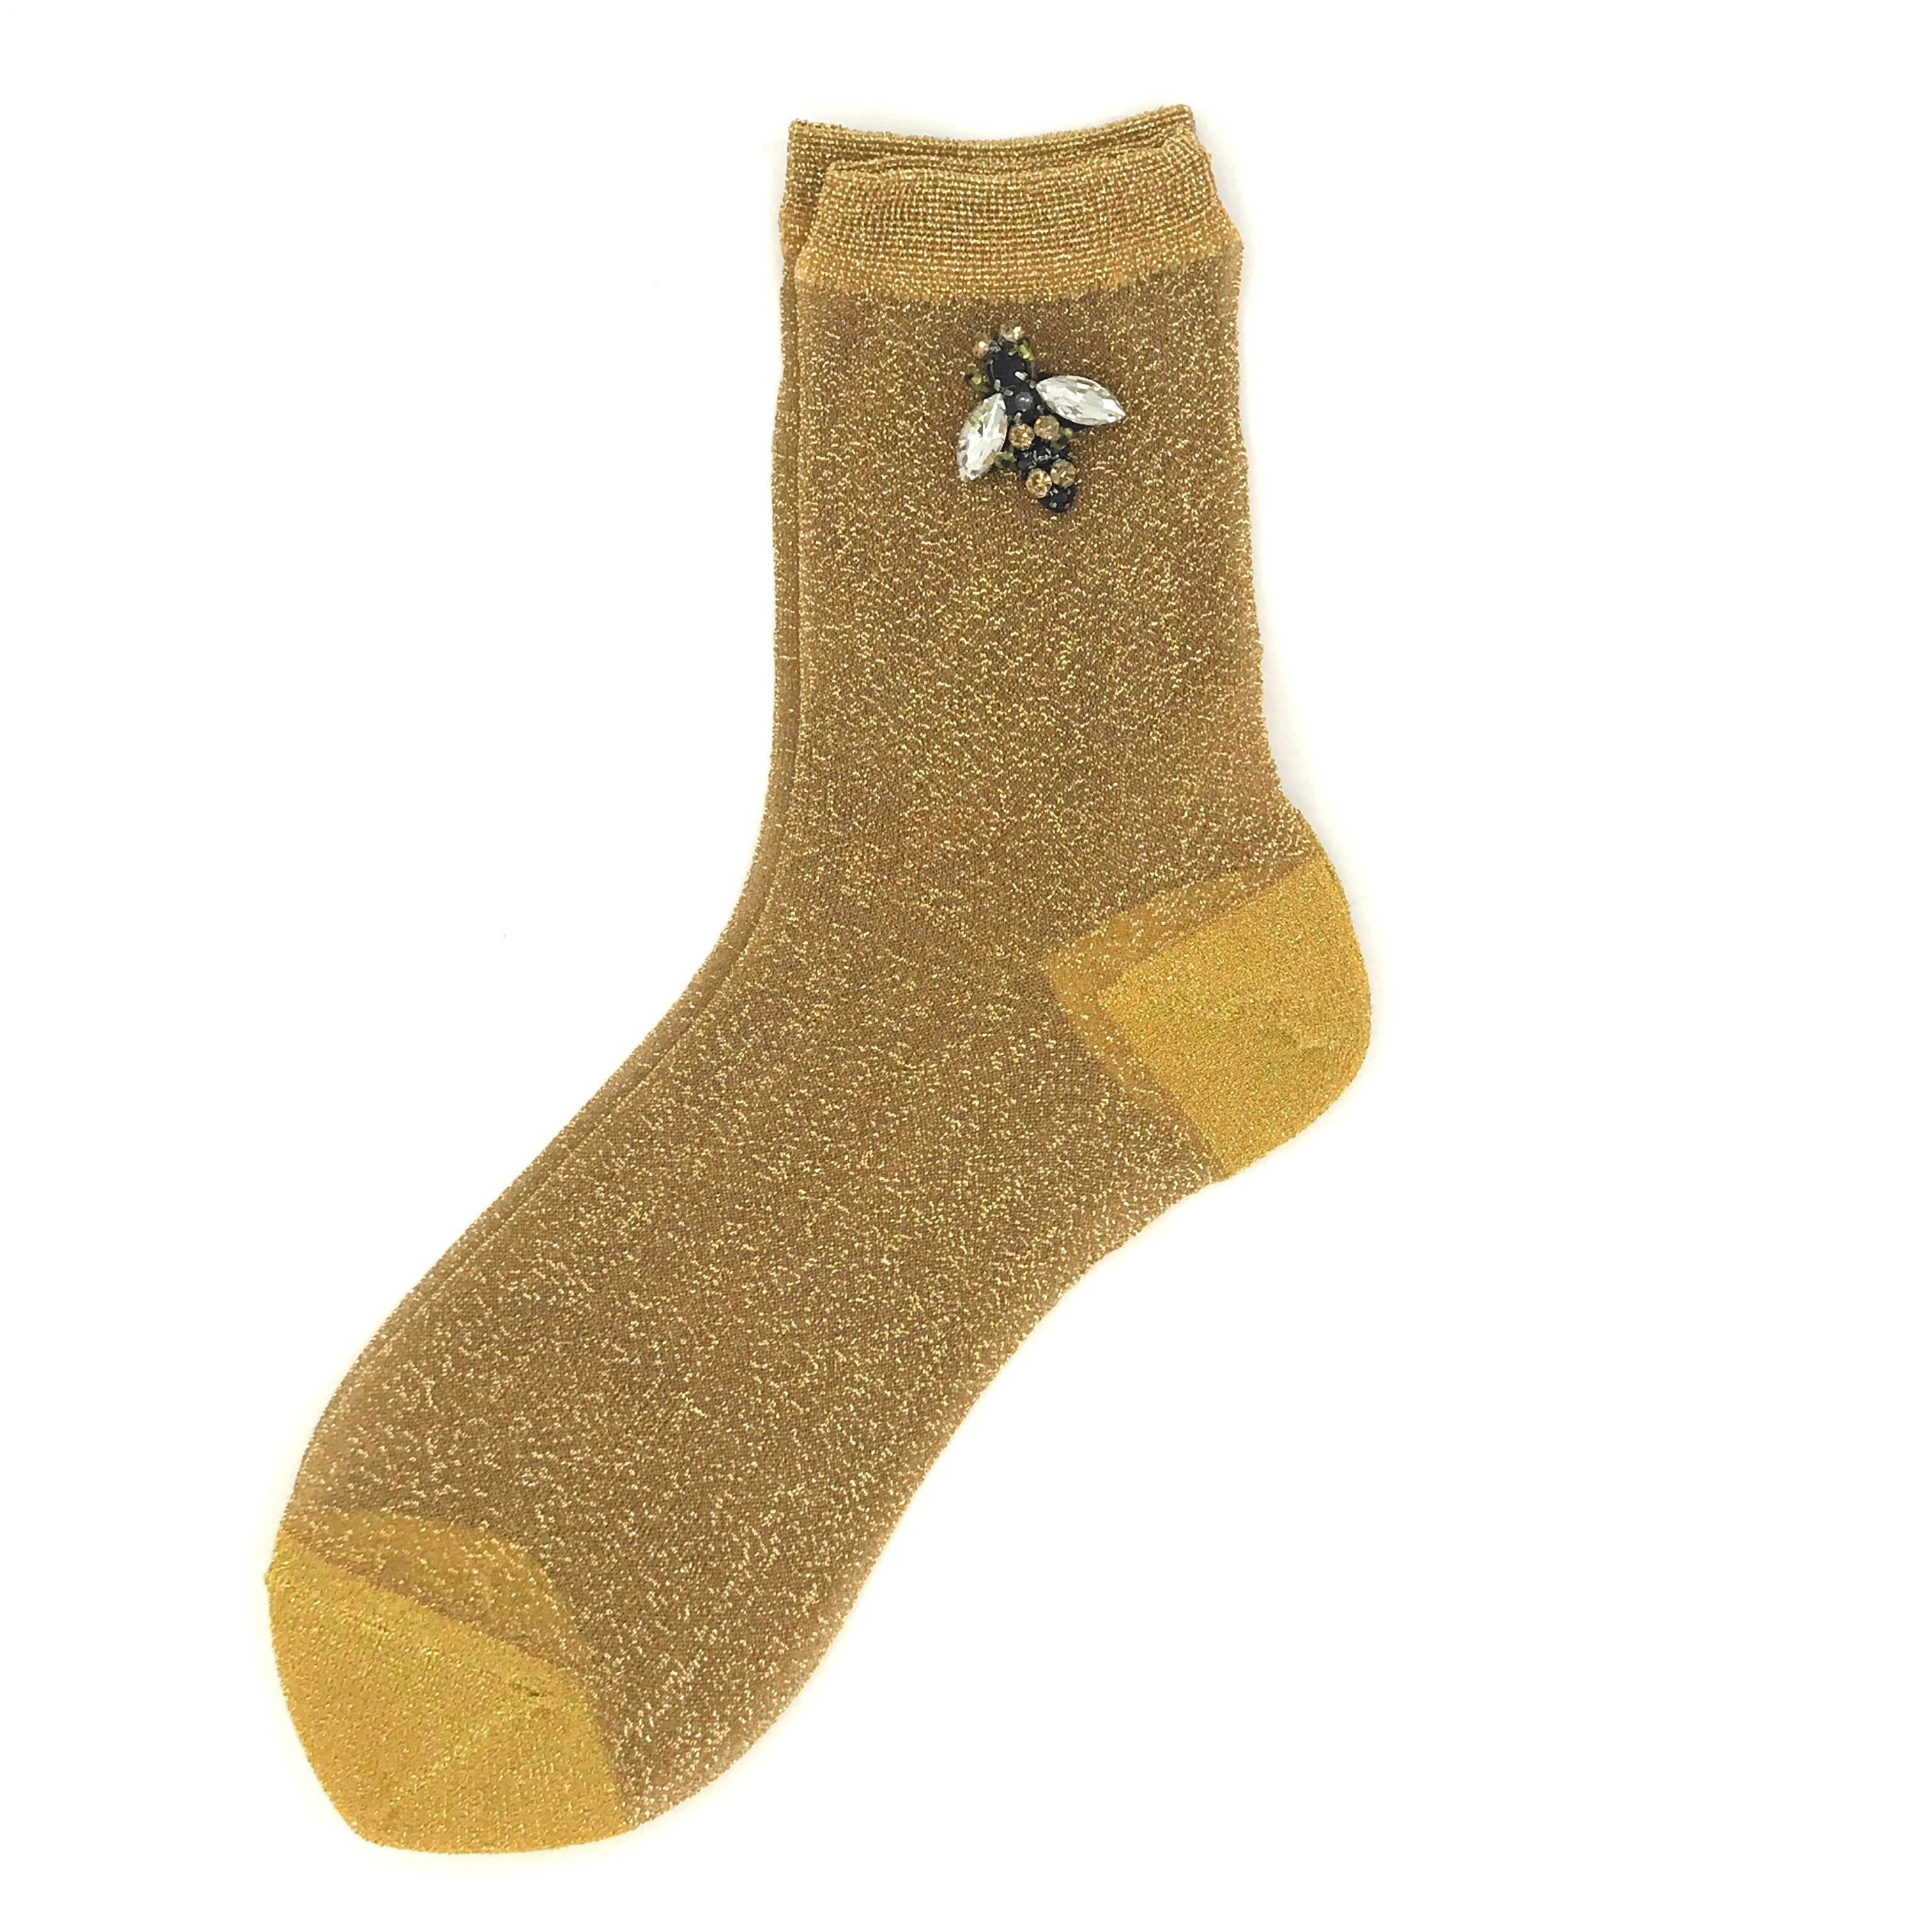 Rio socks with or without a sparkly bee pin